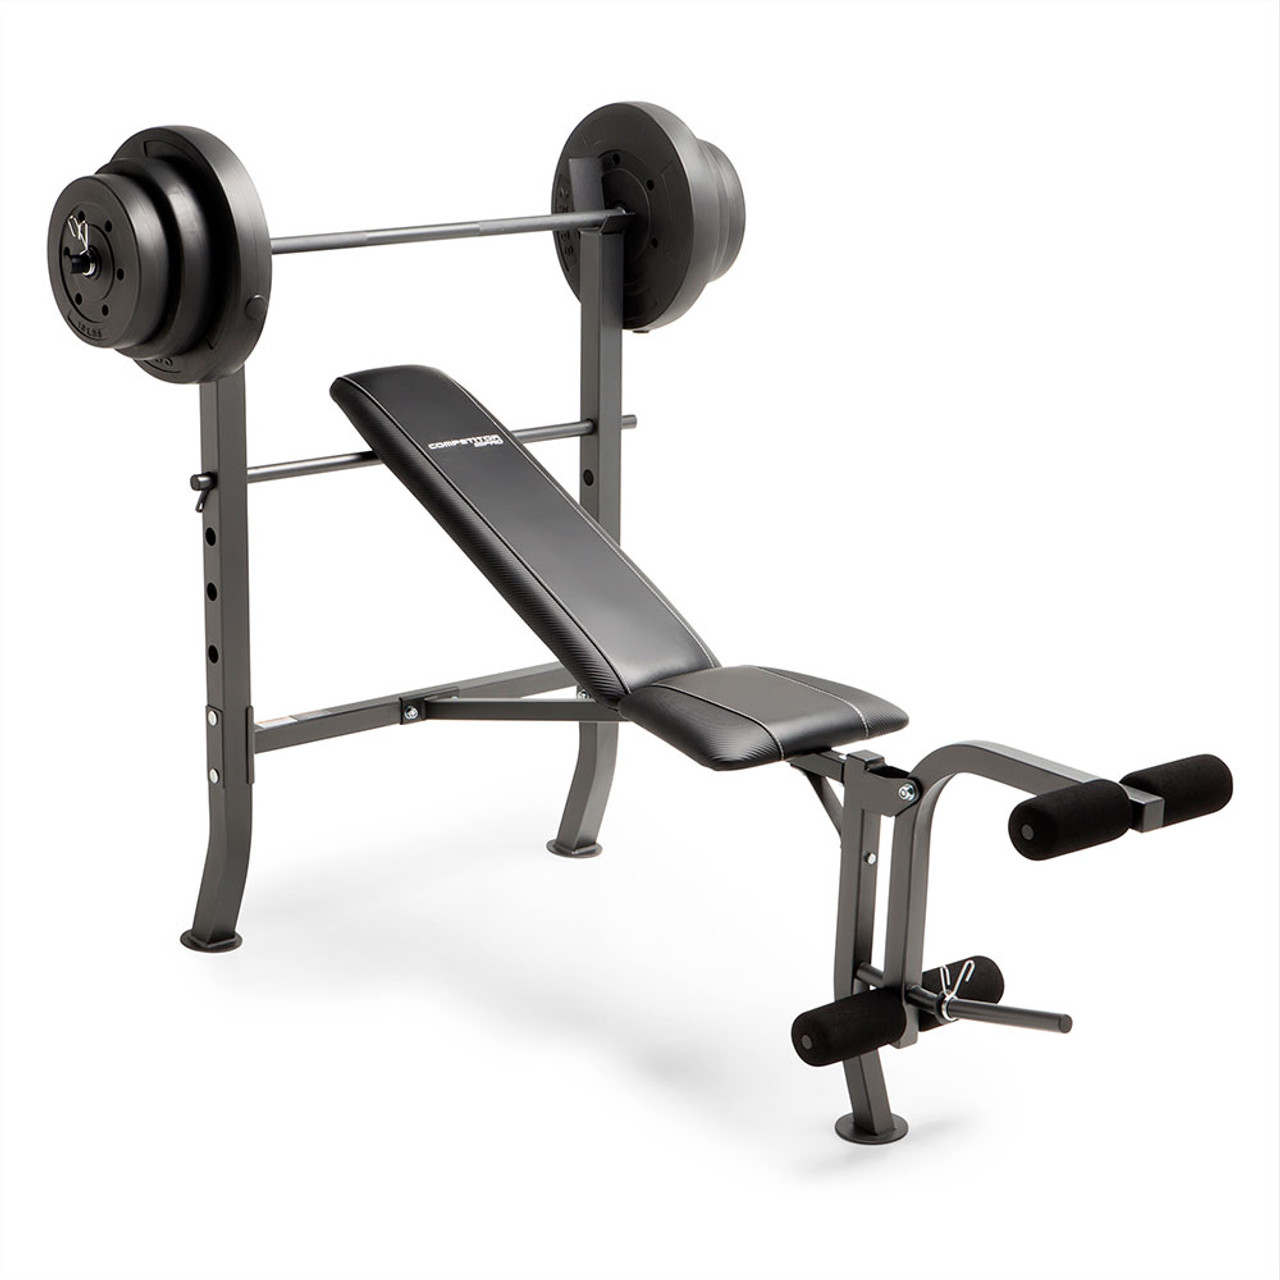 57573706850 Competitor Pro Standard Bench + 100lb Weight Plate Set